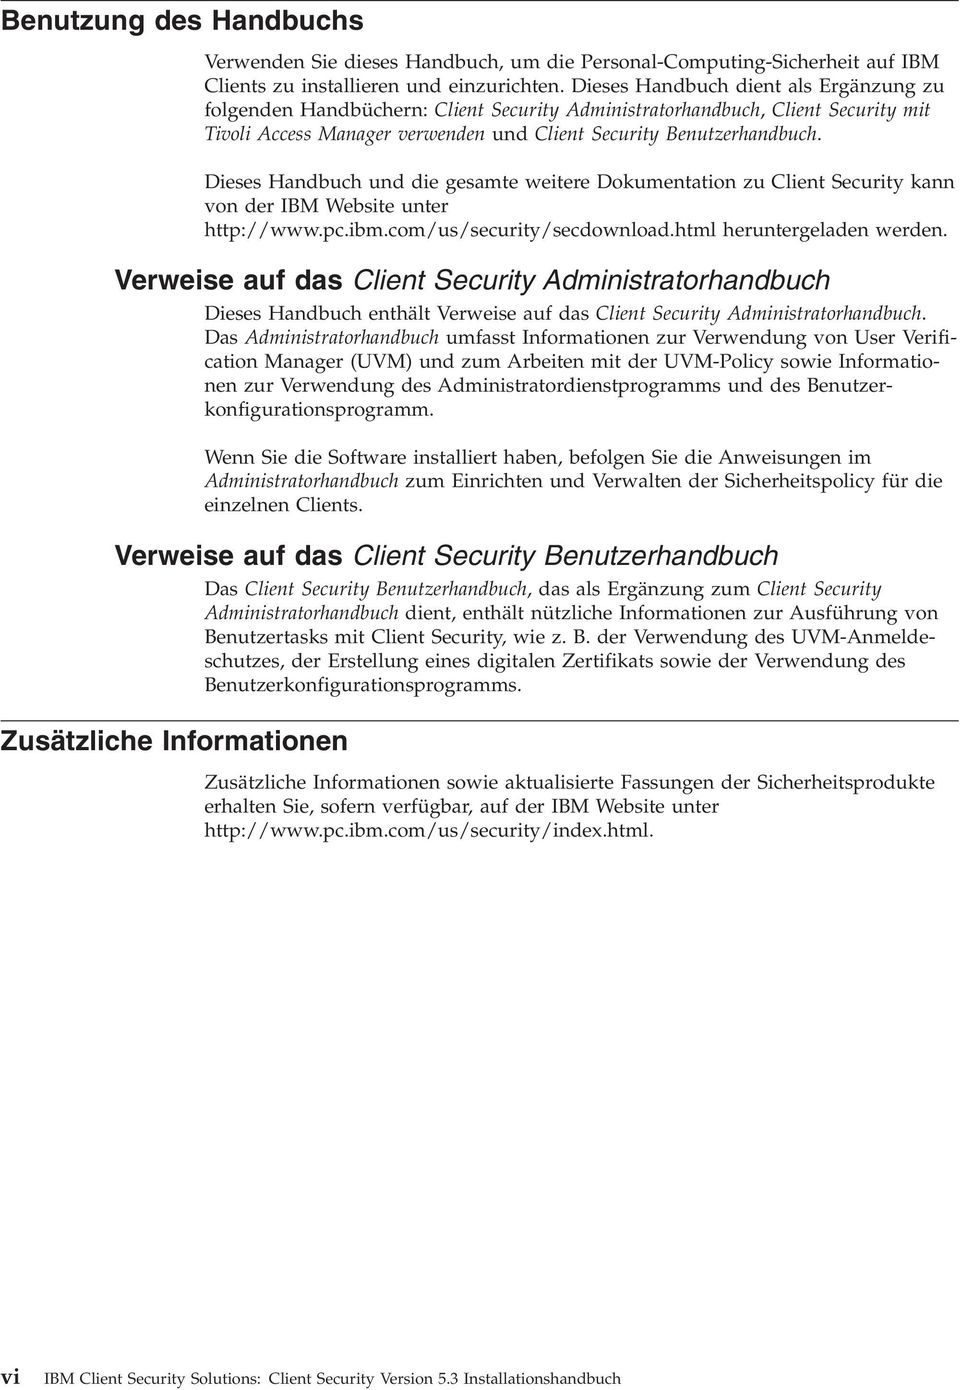 Dieses Handbuch und die gesamte weitere Dokumentation zu Client Security kann on der IBM Website unter http://www.pc.ibm.com/us/security/secdownload.html heruntergeladen werden.